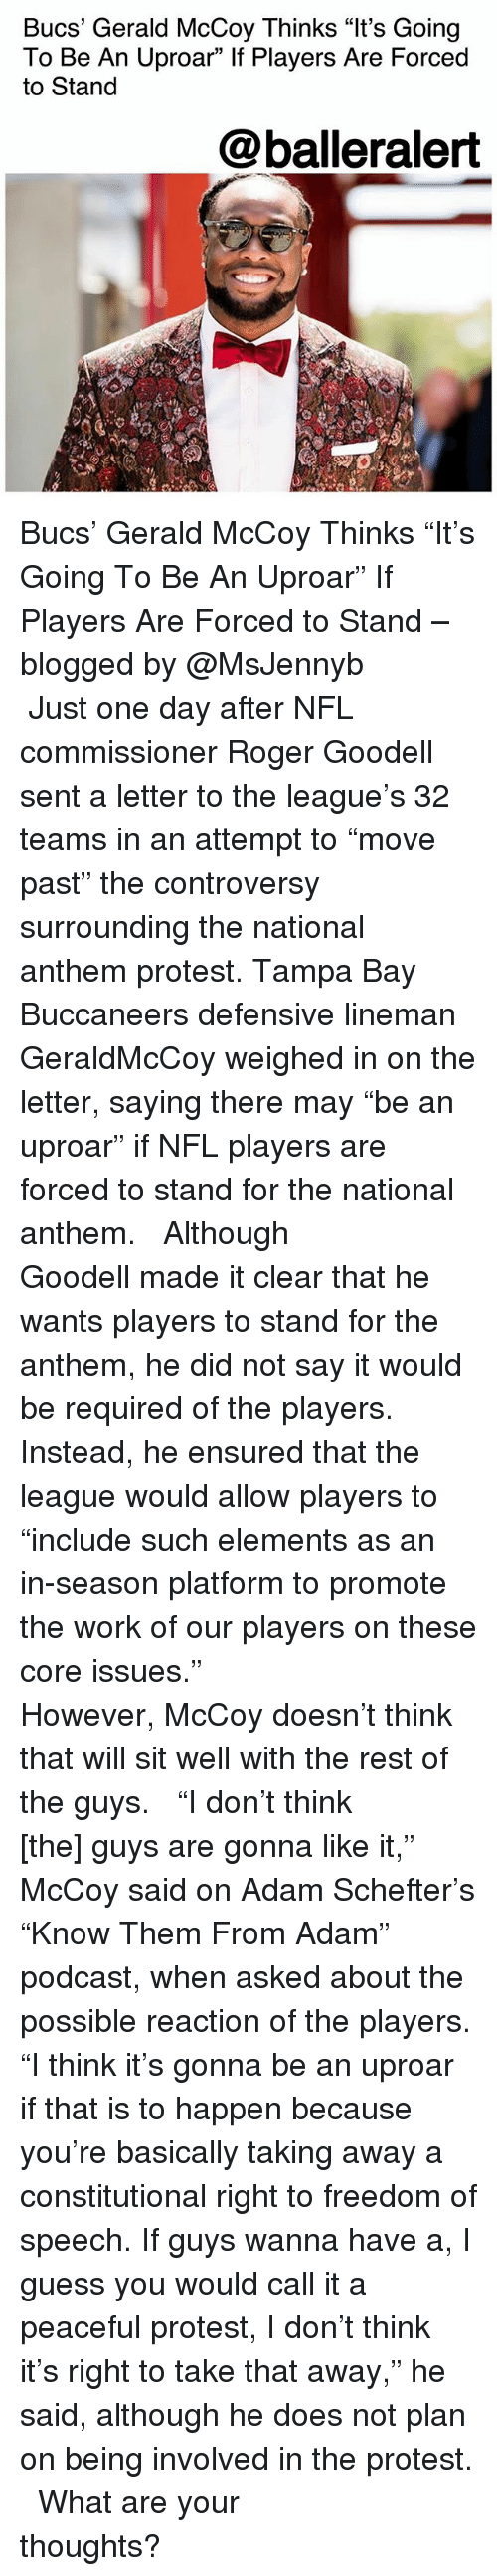 "Goodell: Bucs' Gerald McCoy Thinks ""It's Going  To Be An Uproar"" If Players Are Forced  to Stand  @balleralert Bucs' Gerald McCoy Thinks ""It's Going To Be An Uproar"" If Players Are Forced to Stand – blogged by @MsJennyb ⠀⠀⠀⠀⠀⠀⠀ ⠀⠀⠀⠀⠀⠀⠀ Just one day after NFL commissioner Roger Goodell sent a letter to the league's 32 teams in an attempt to ""move past"" the controversy surrounding the national anthem protest. Tampa Bay Buccaneers defensive lineman GeraldMcCoy weighed in on the letter, saying there may ""be an uproar"" if NFL players are forced to stand for the national anthem. ⠀⠀⠀⠀⠀⠀⠀ ⠀⠀⠀⠀⠀⠀⠀ Although Goodell made it clear that he wants players to stand for the anthem, he did not say it would be required of the players. Instead, he ensured that the league would allow players to ""include such elements as an in-season platform to promote the work of our players on these core issues."" ⠀⠀⠀⠀⠀⠀⠀ ⠀⠀⠀⠀⠀⠀⠀ However, McCoy doesn't think that will sit well with the rest of the guys. ⠀⠀⠀⠀⠀⠀⠀ ⠀⠀⠀⠀⠀⠀⠀ ""I don't think [the] guys are gonna like it,"" McCoy said on Adam Schefter's ""Know Them From Adam"" podcast, when asked about the possible reaction of the players. ""I think it's gonna be an uproar if that is to happen because you're basically taking away a constitutional right to freedom of speech. If guys wanna have a, I guess you would call it a peaceful protest, I don't think it's right to take that away,"" he said, although he does not plan on being involved in the protest. ⠀⠀⠀⠀⠀⠀⠀ ⠀⠀⠀⠀⠀⠀⠀ What are your thoughts?"